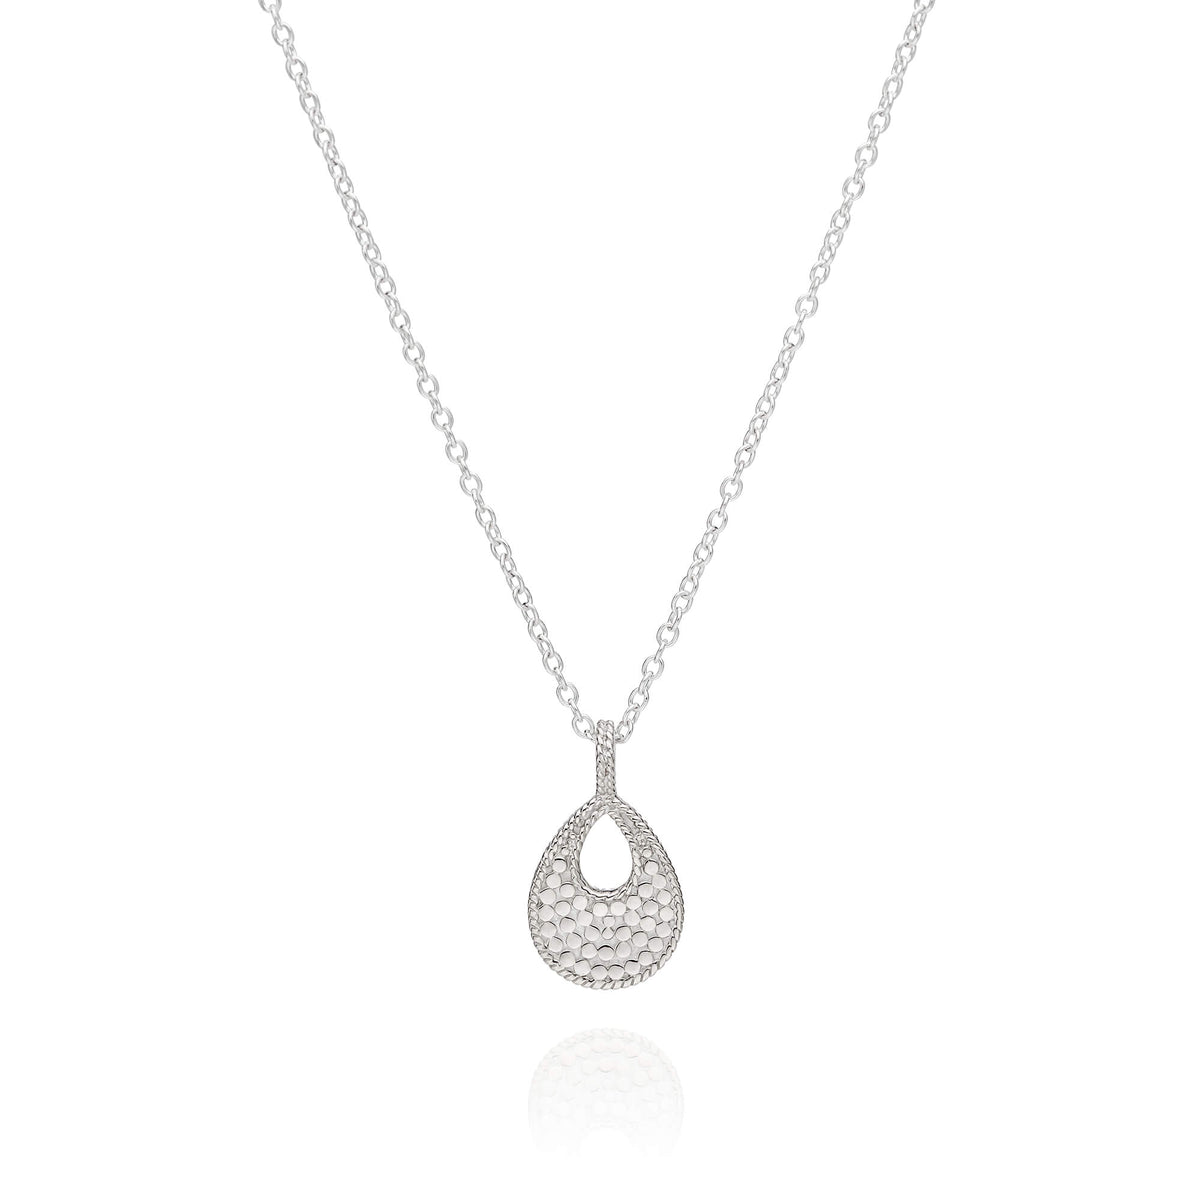 AB NK10069 Mosaic small open drop pendant